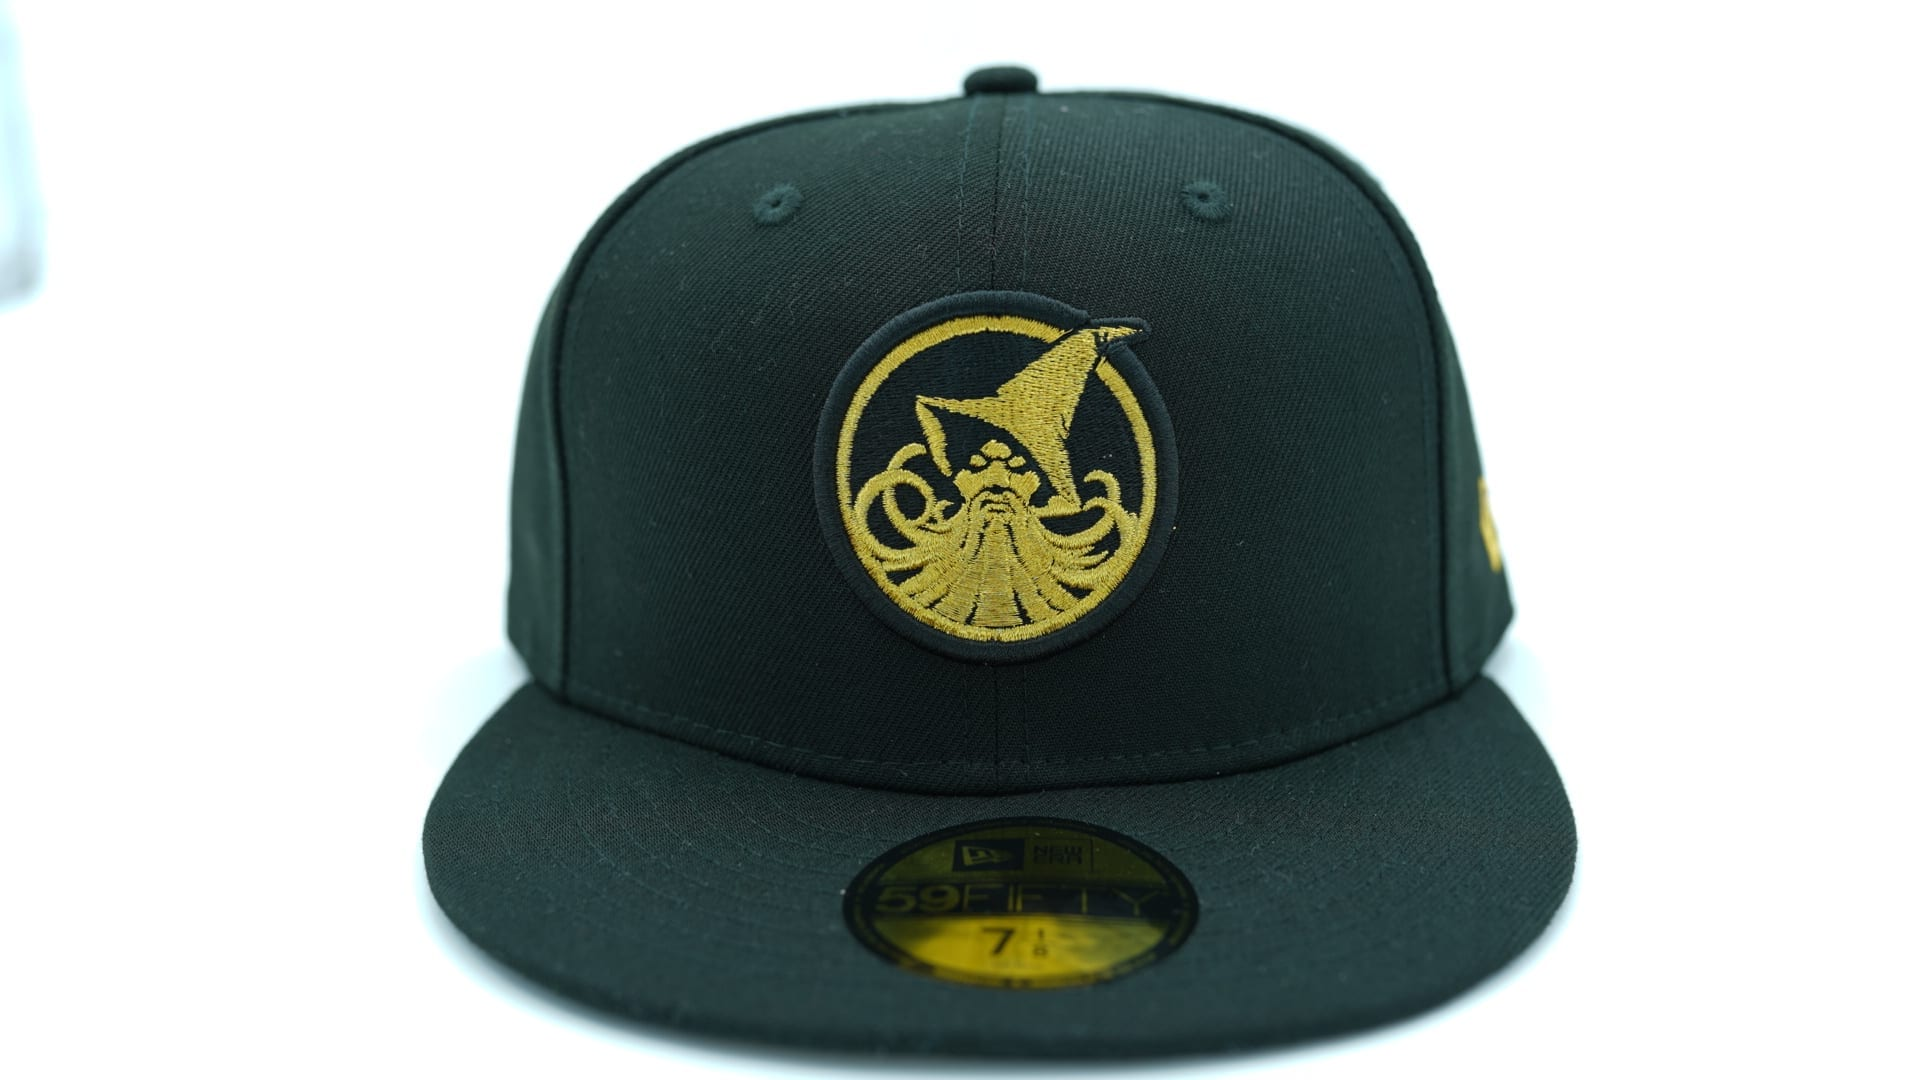 Suede Cross Bats 59Fifty Fitted Cap by NEW ERA x JUST FITTEDS Available Now